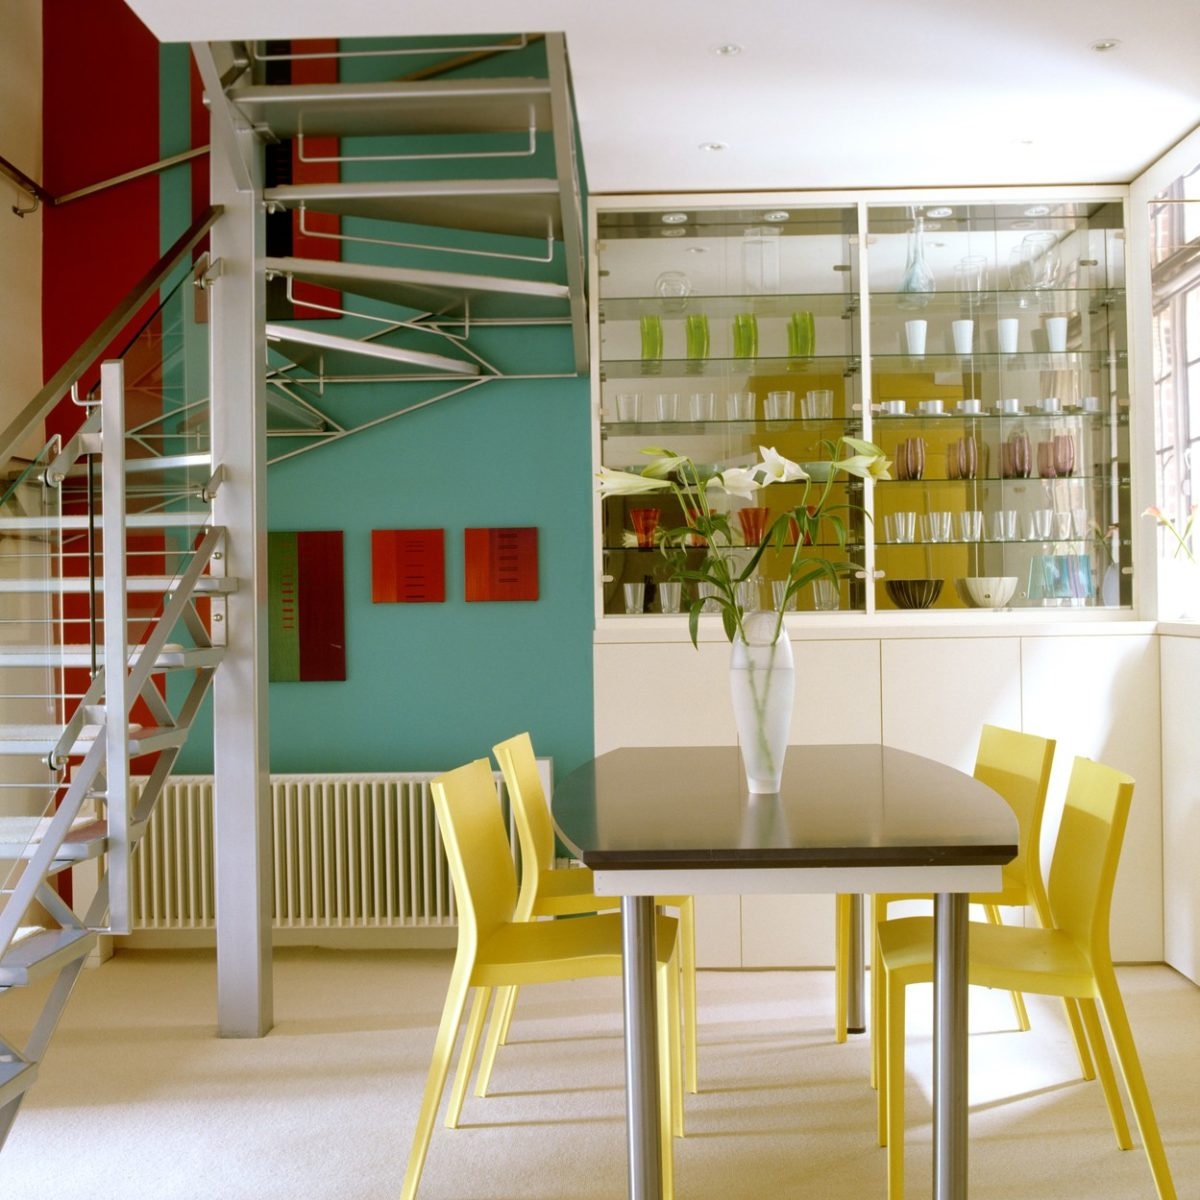 1930s mansion flat renovated with striking stainless steel and glass central staircase